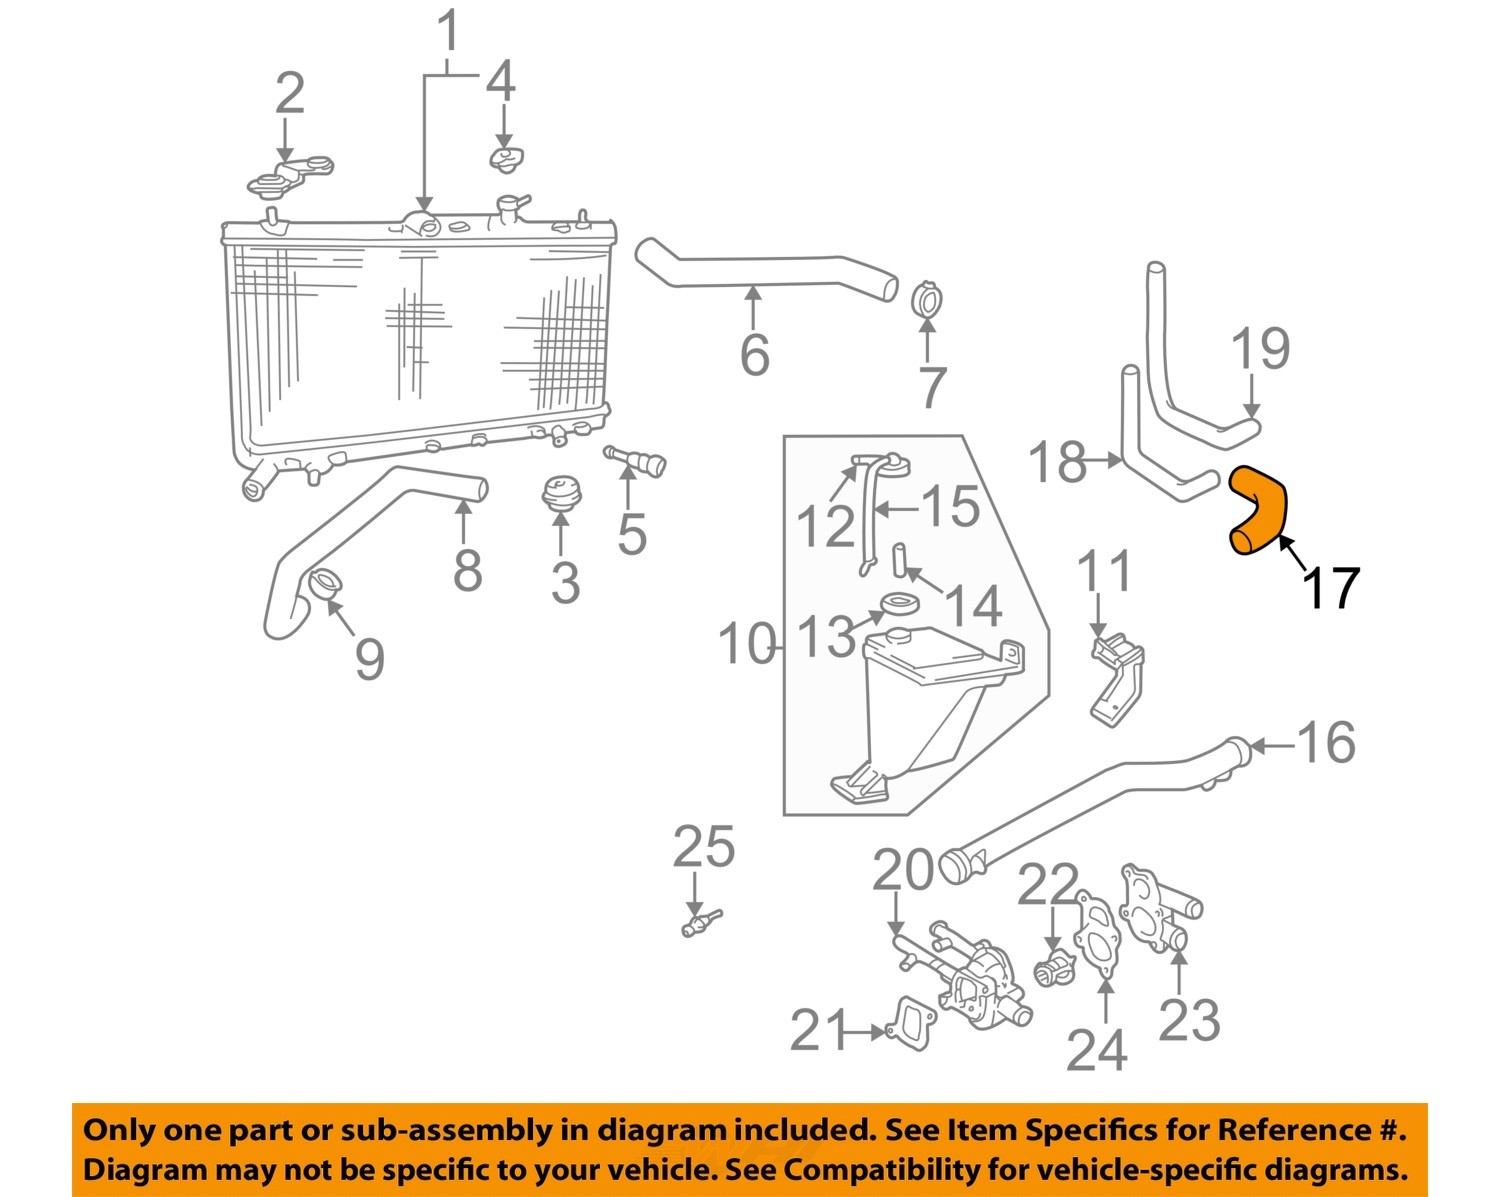 hight resolution of 2005 hyundai accent stereo wiring diagram hyundai auto 2000 hyundai accent starter location 2011 hyundai accent